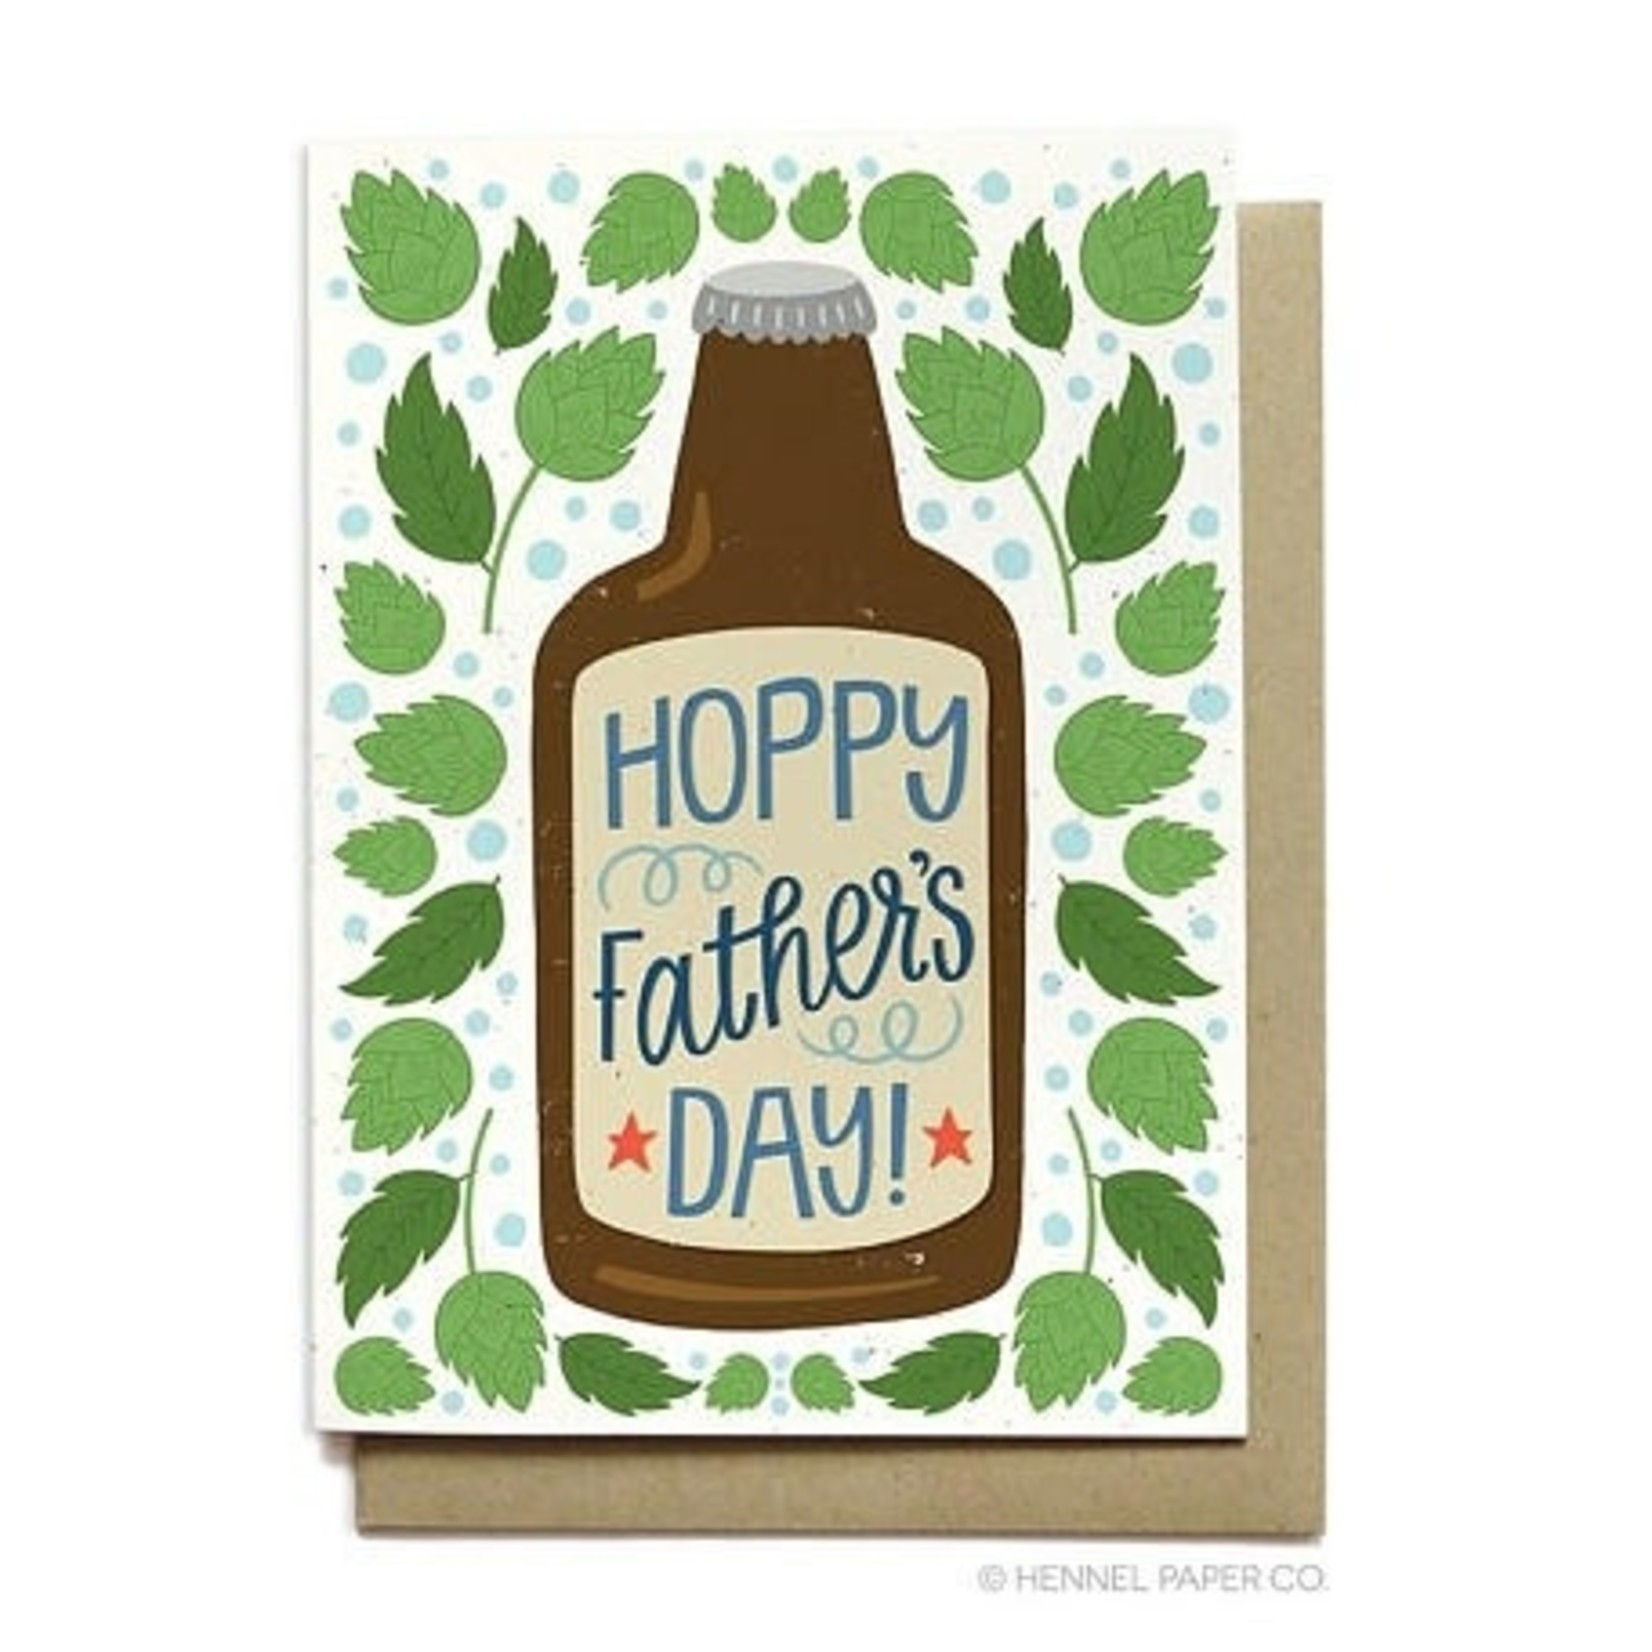 Hennel Paper Co. Hoppy Father's Day card